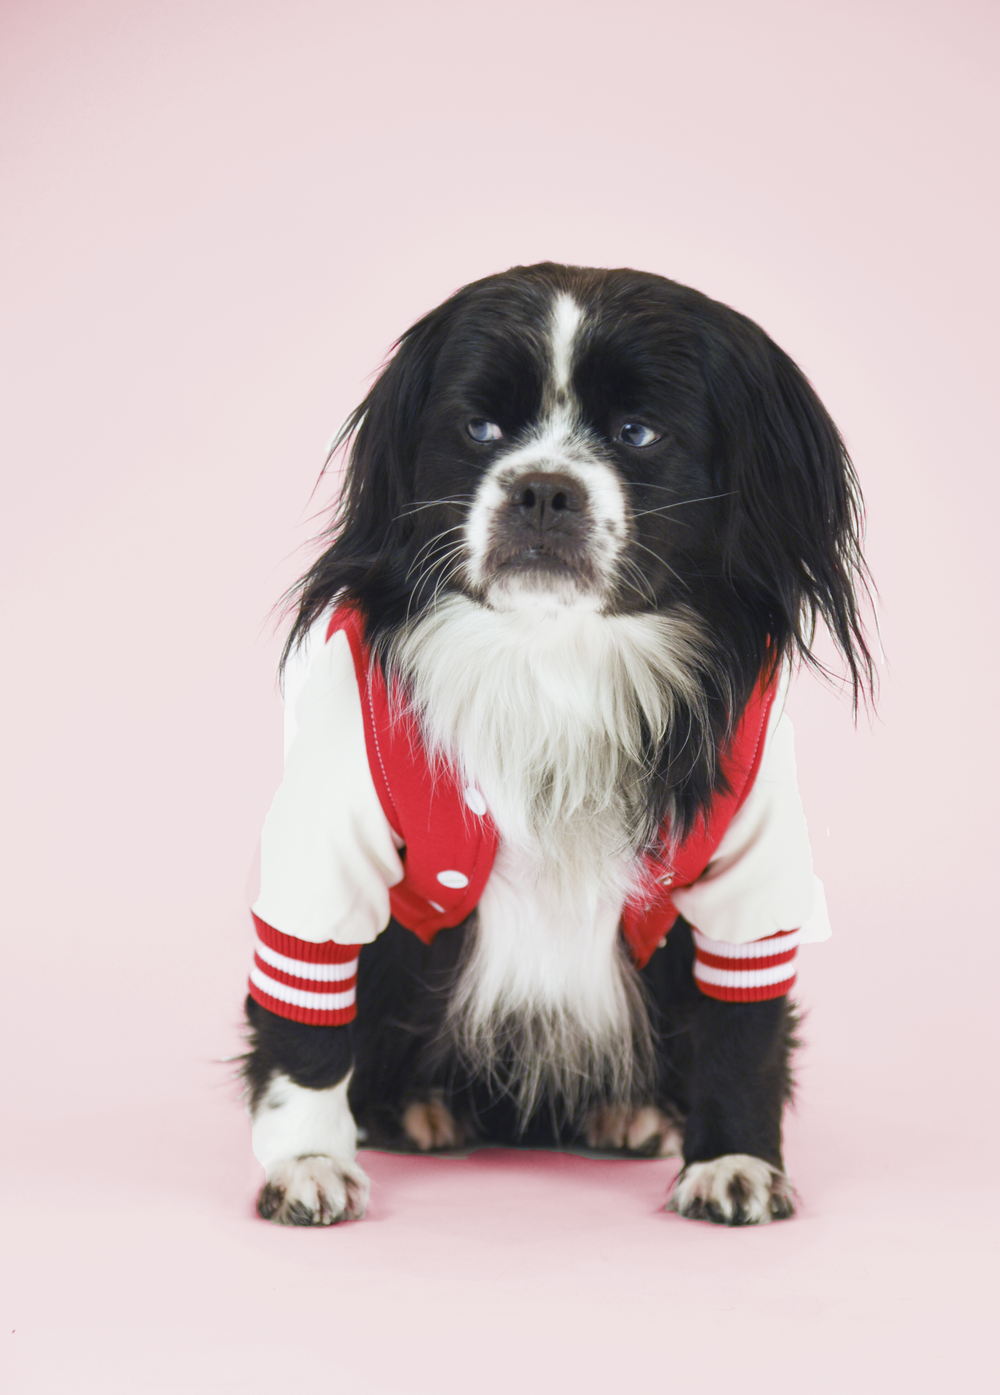 Meet Roscoe. - Age: 2 years oldBreed: Pekingese/Border Collie MixHometown: Toronto, ON